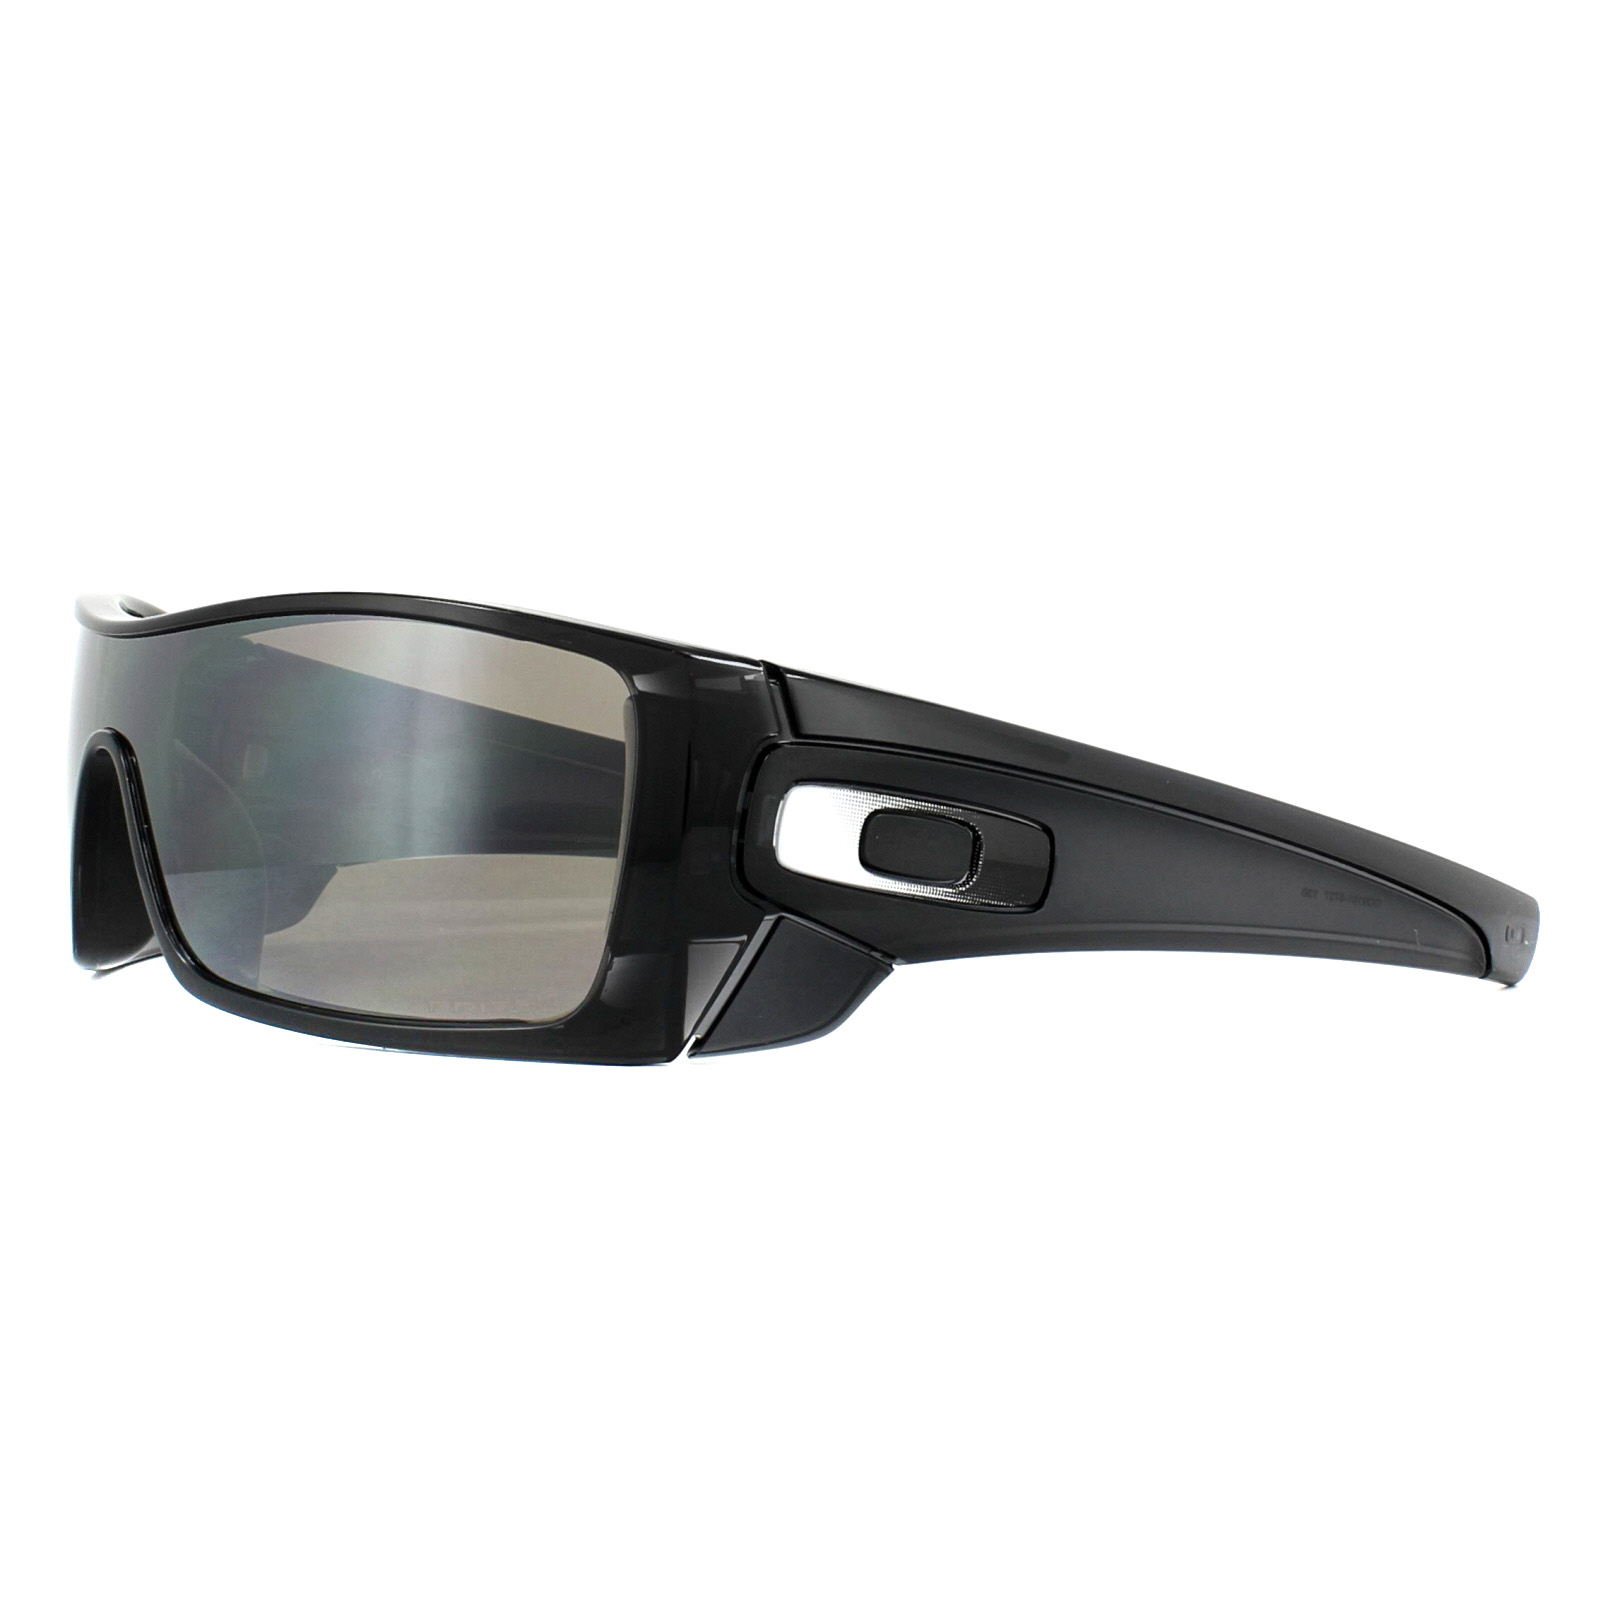 89a1a747403 Oakley Sunglasses Batwolf OO9101-57 Black Ink Prizm Black ...